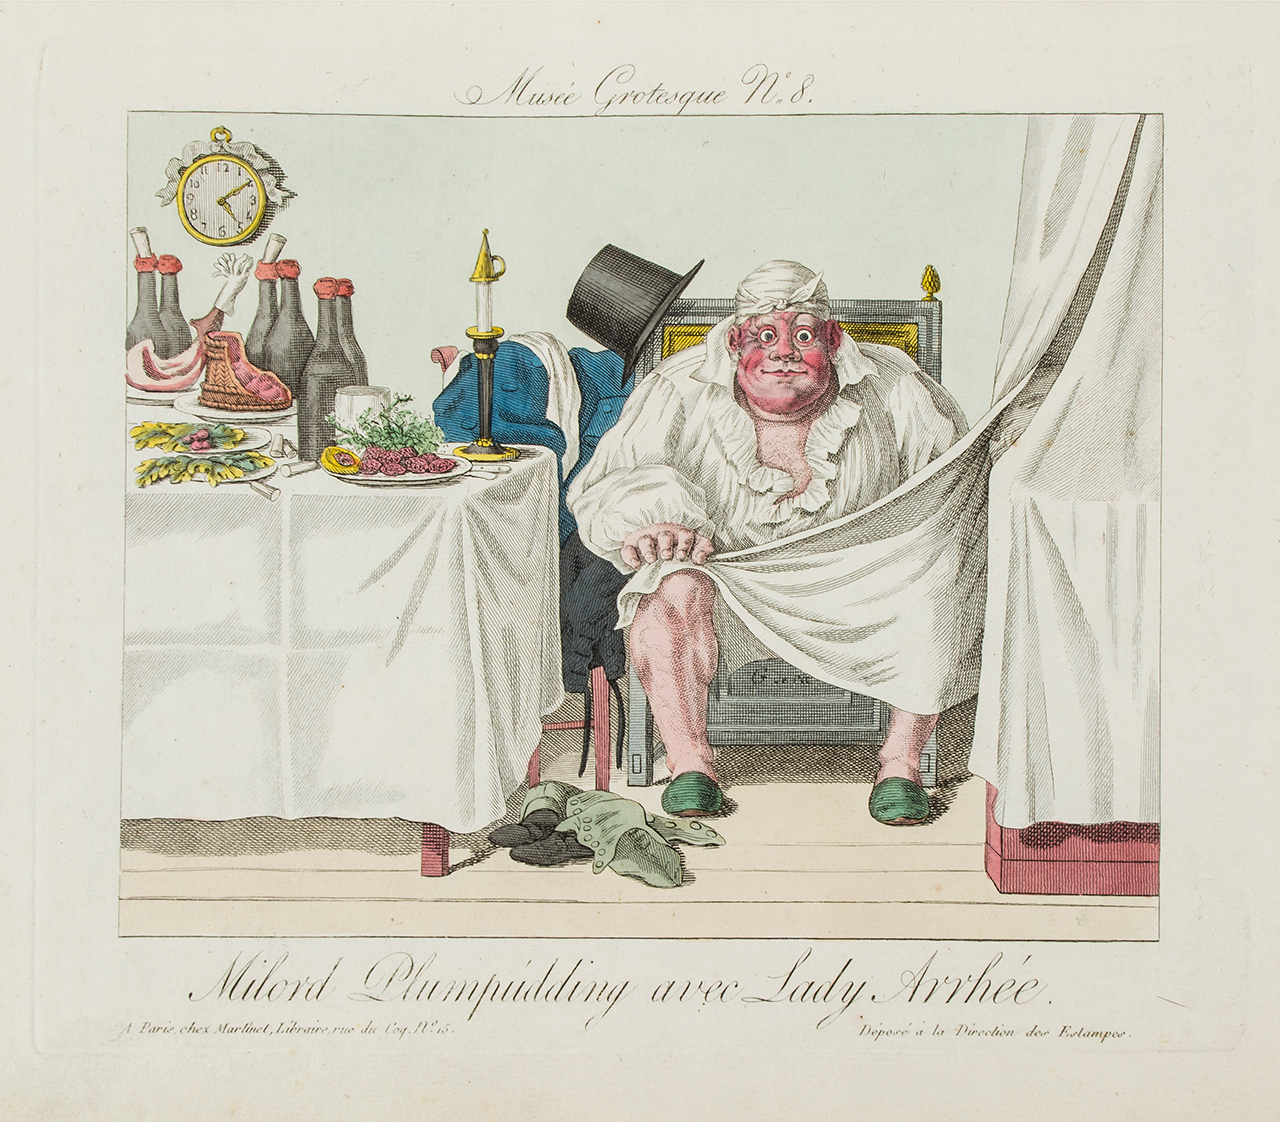 Godissart de Cari, plate from 'Musée Grotesque' (c.1820), hand-colored etching (click to enlarge)